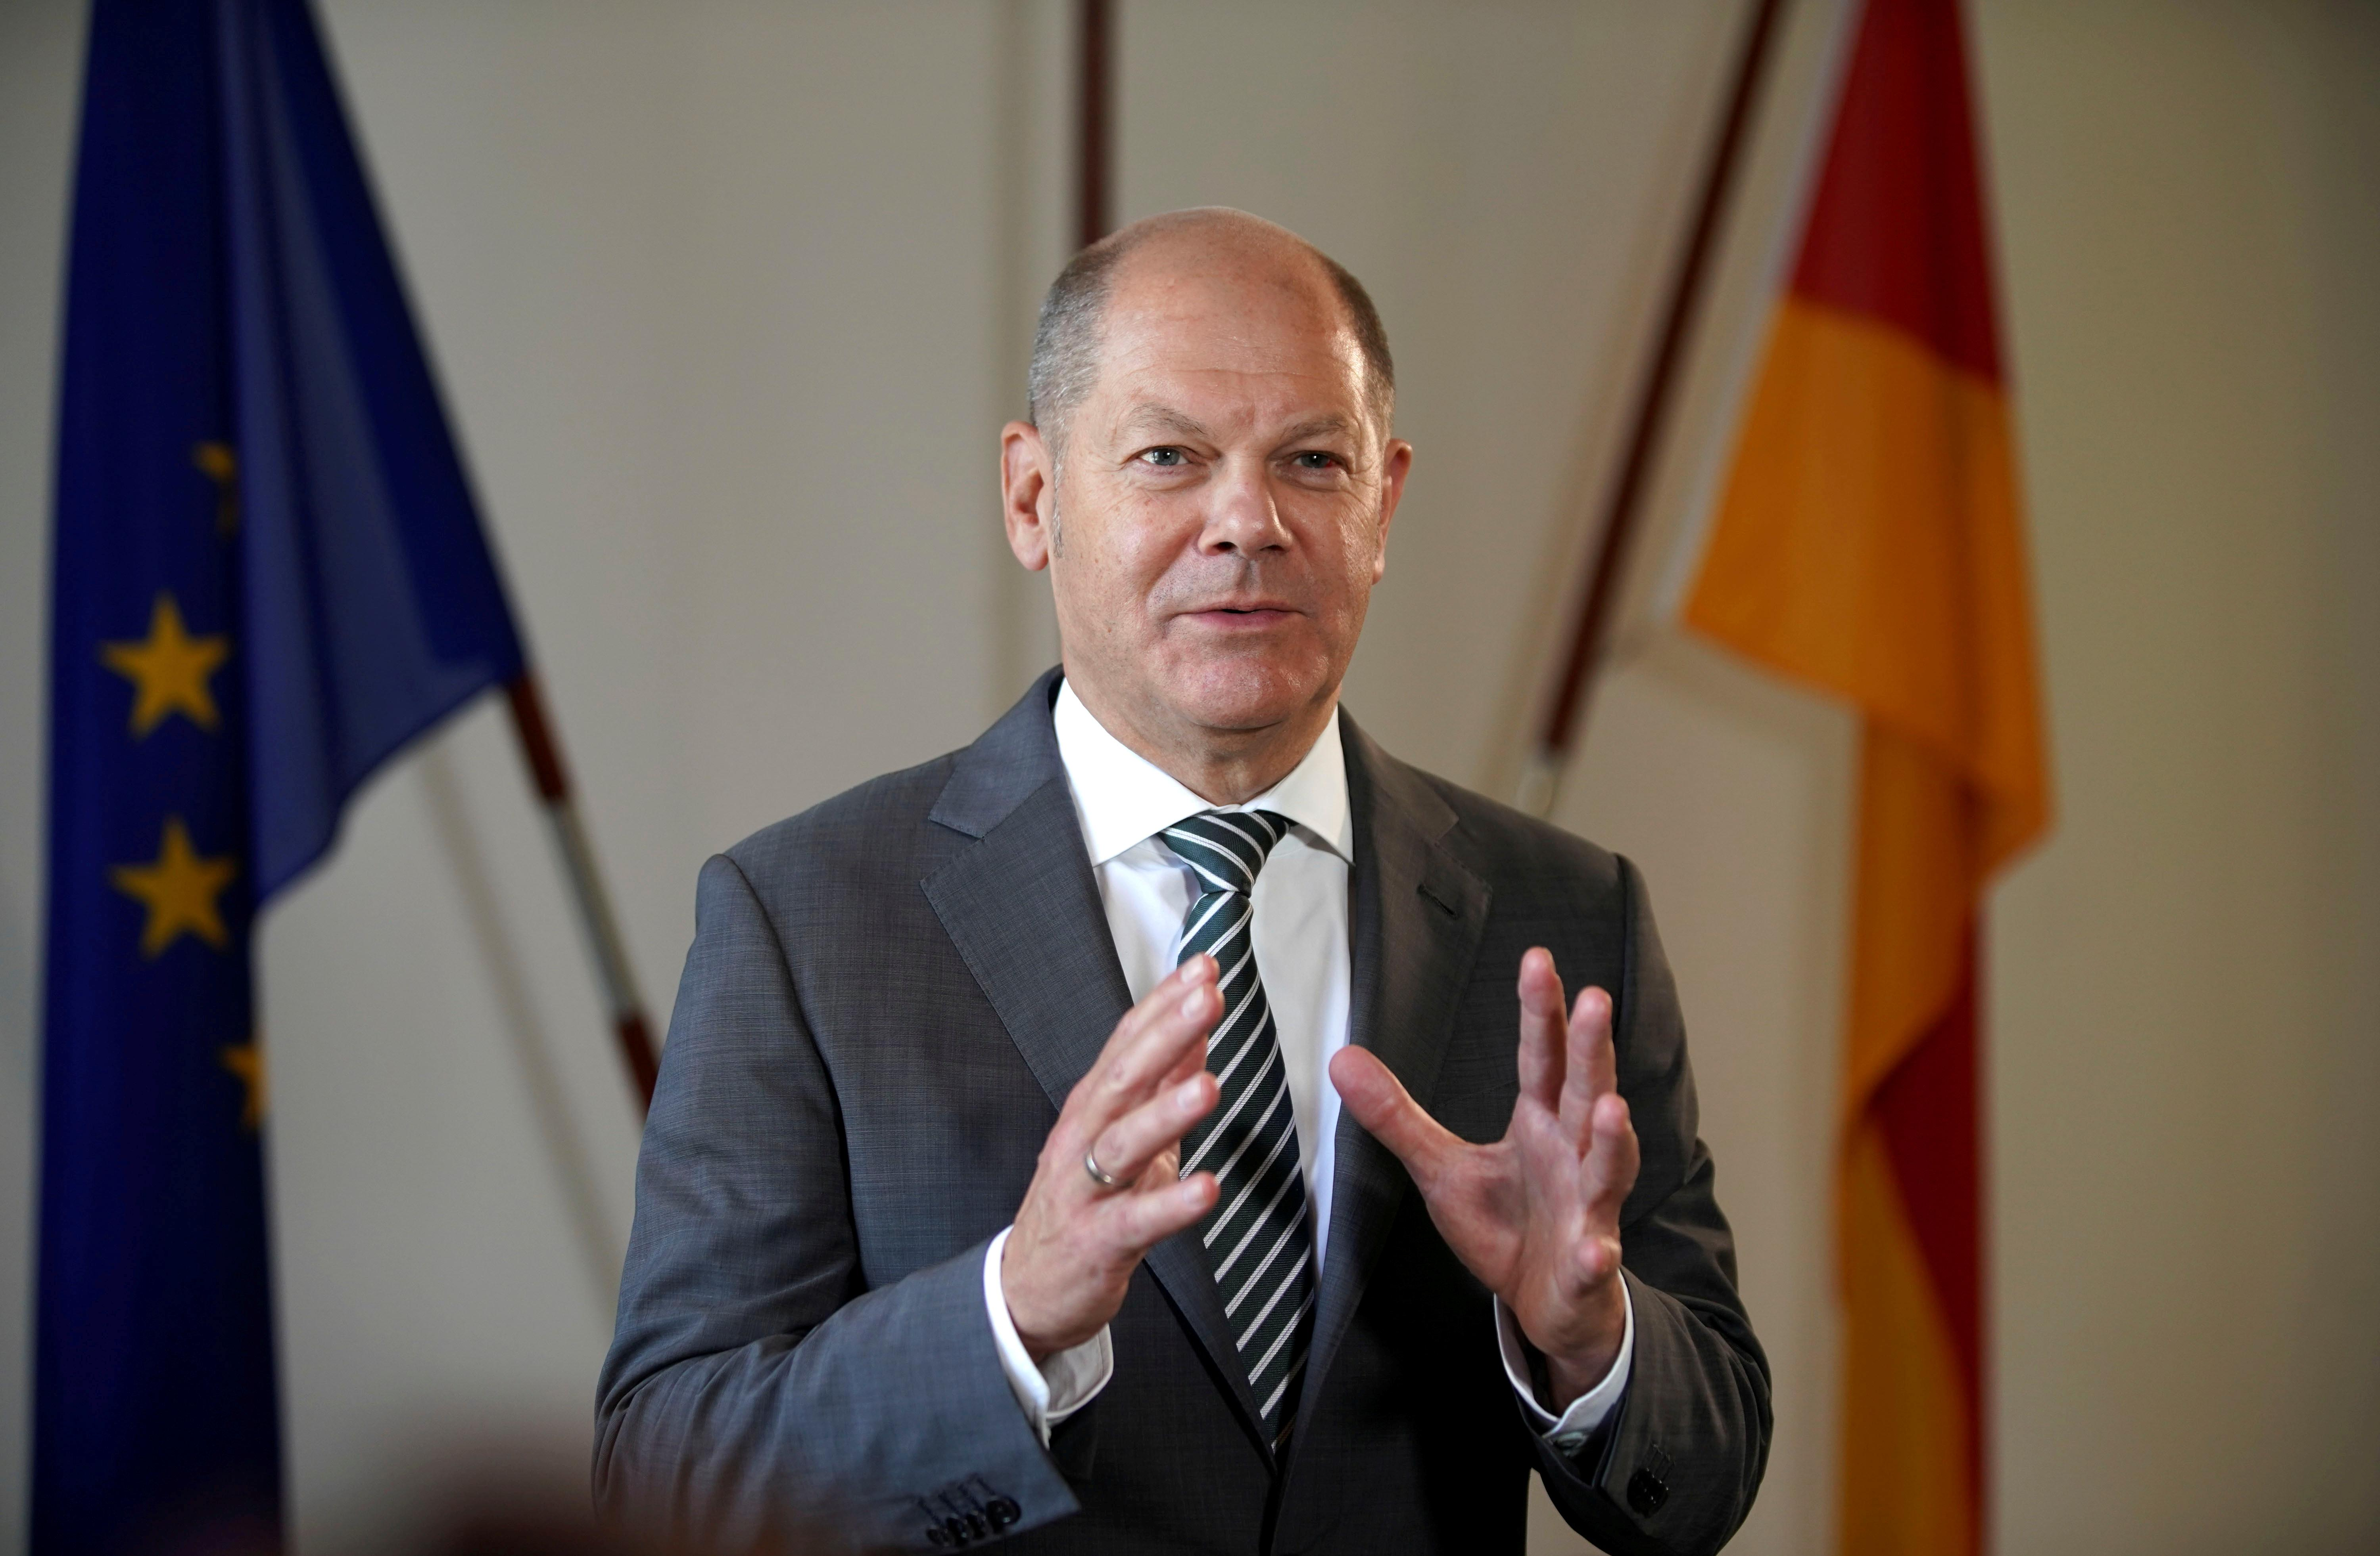 German finance minister Scholz to run for SPD leadership